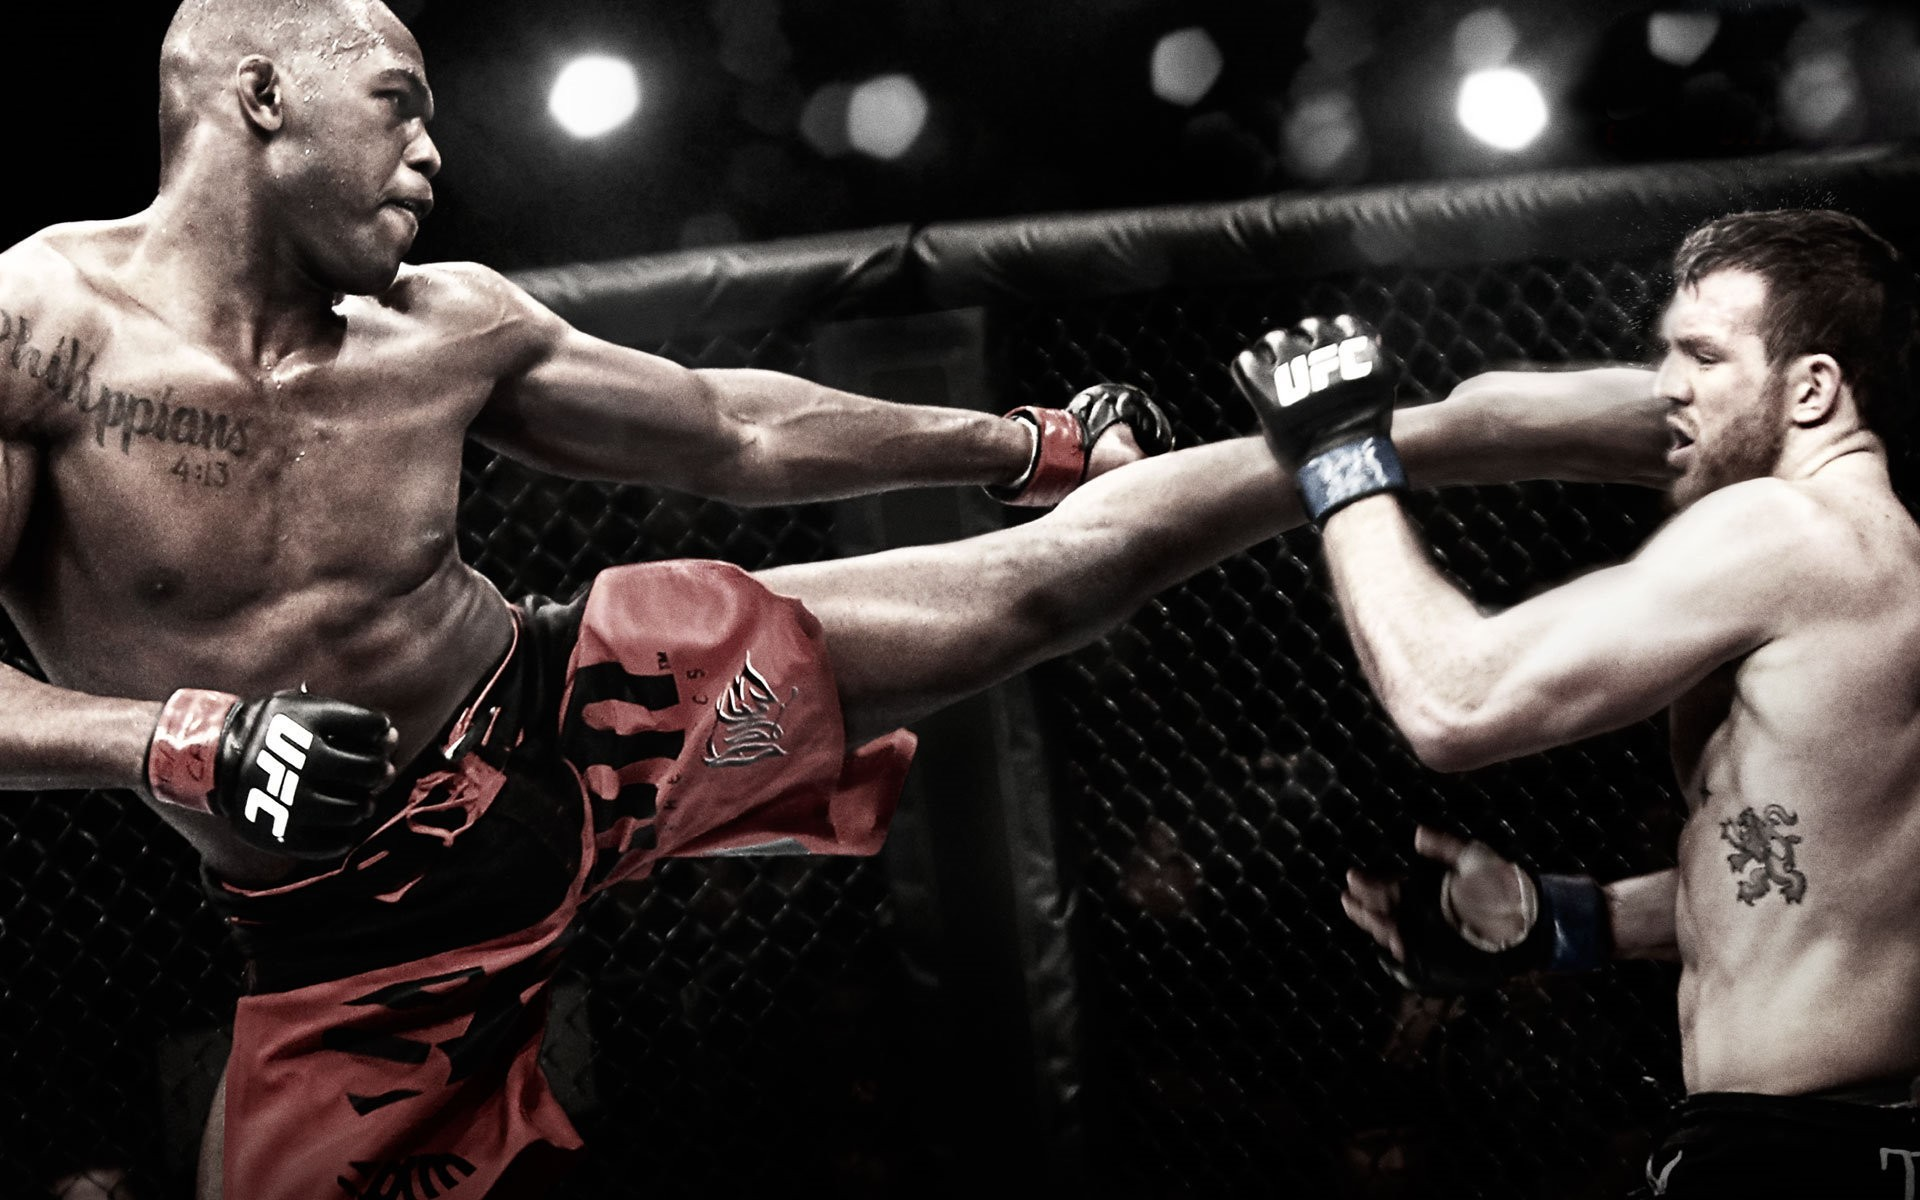 Ufc Wallpaper ① Download Free Full Hd Wallpapers For Desktop And